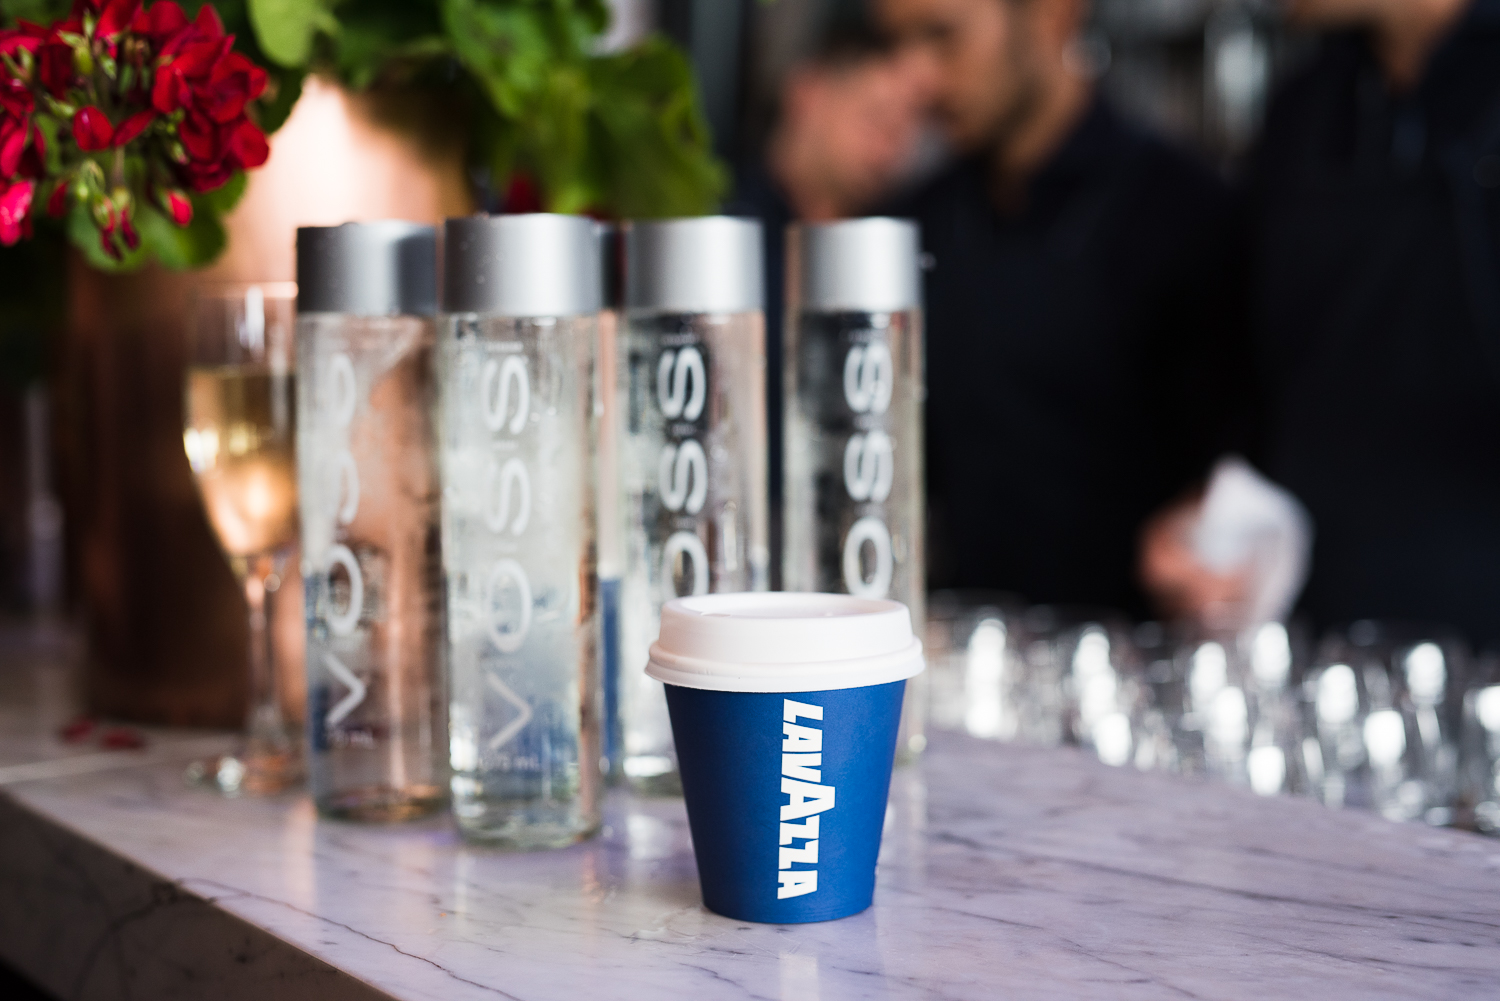 melbourne-cup-day-lavazza-whatwouldkarldo_0048